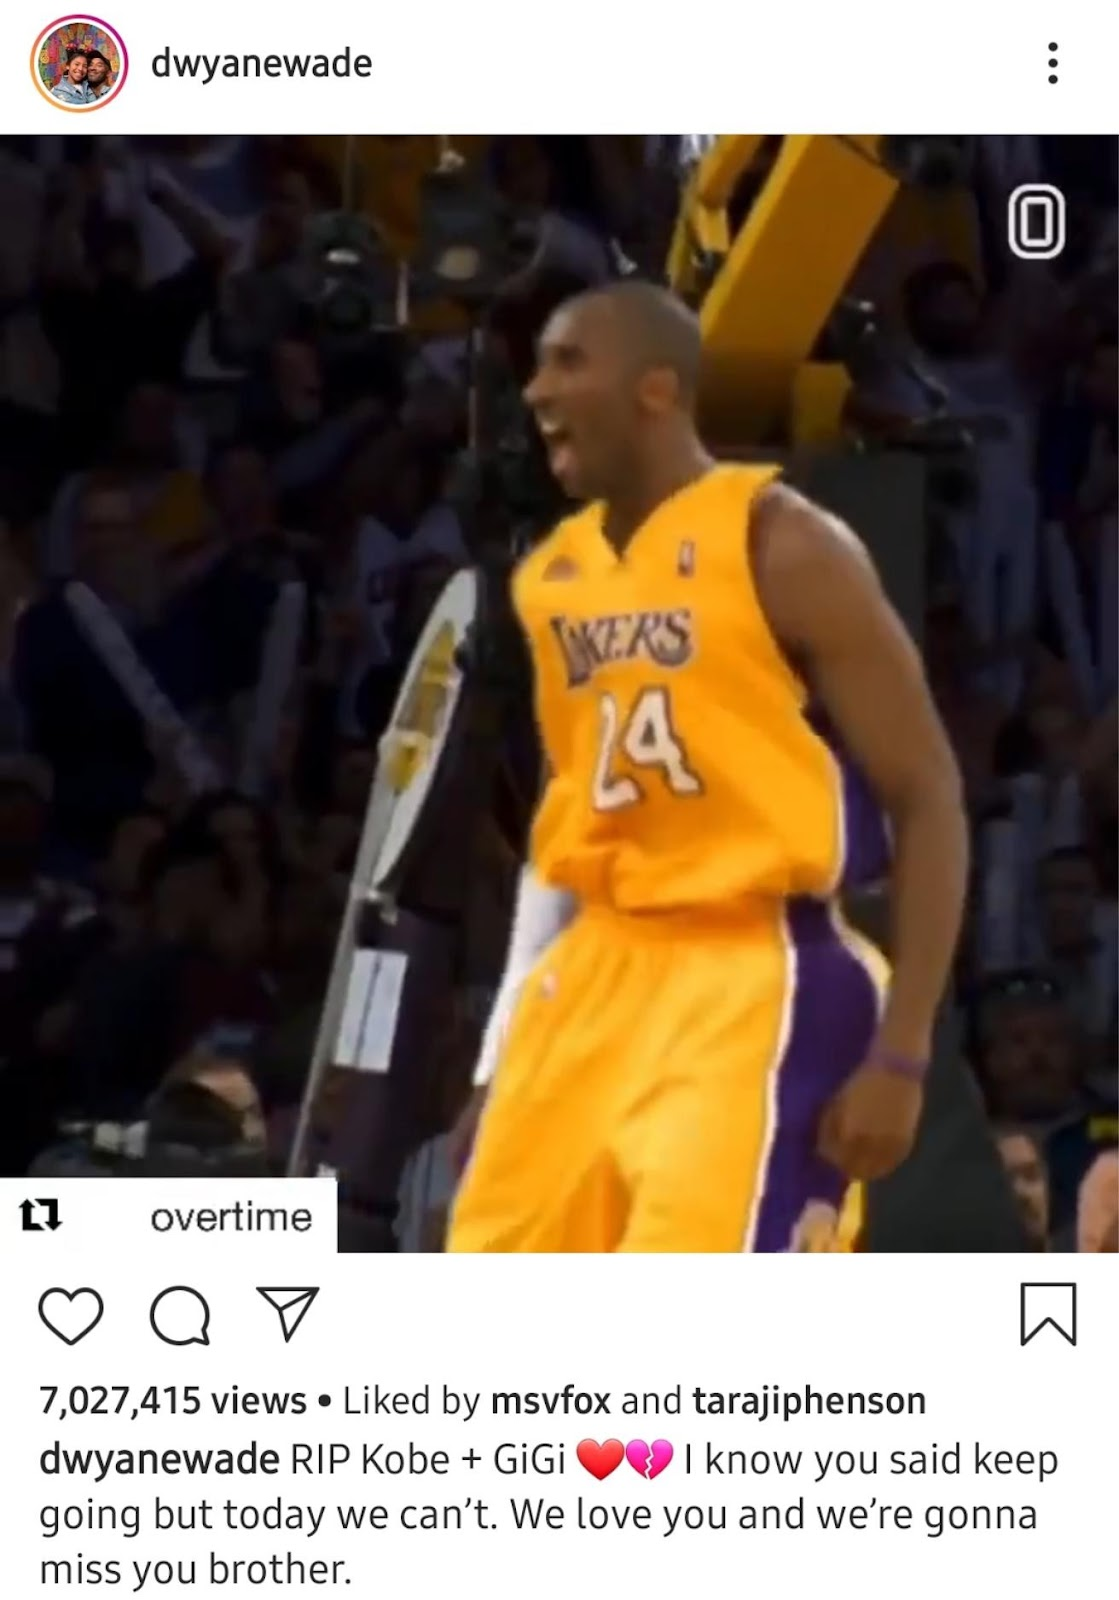 dwyanewade overtime 7,027,415 views • Liked by msvfox and tarajiphenson dwyanewade RIP Kobe + GiGi I know you said keep going but today we can't. We love you and we're gonna miss you brother.